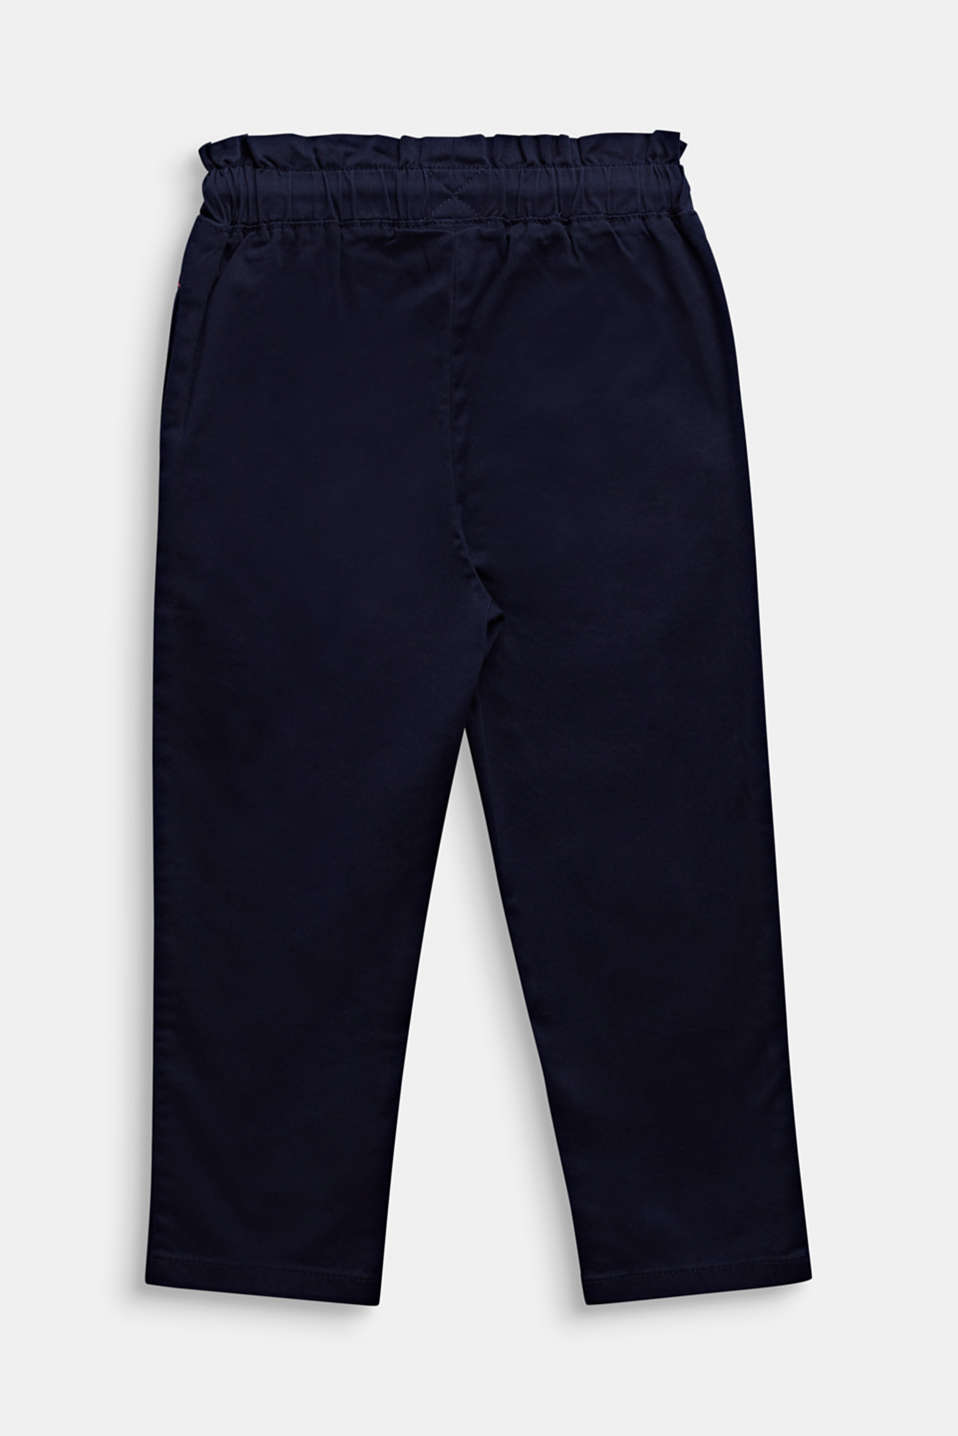 Tracksuit bottom-style trousers made of stretch cotton, MIDNIGHT BLUE, detail image number 1